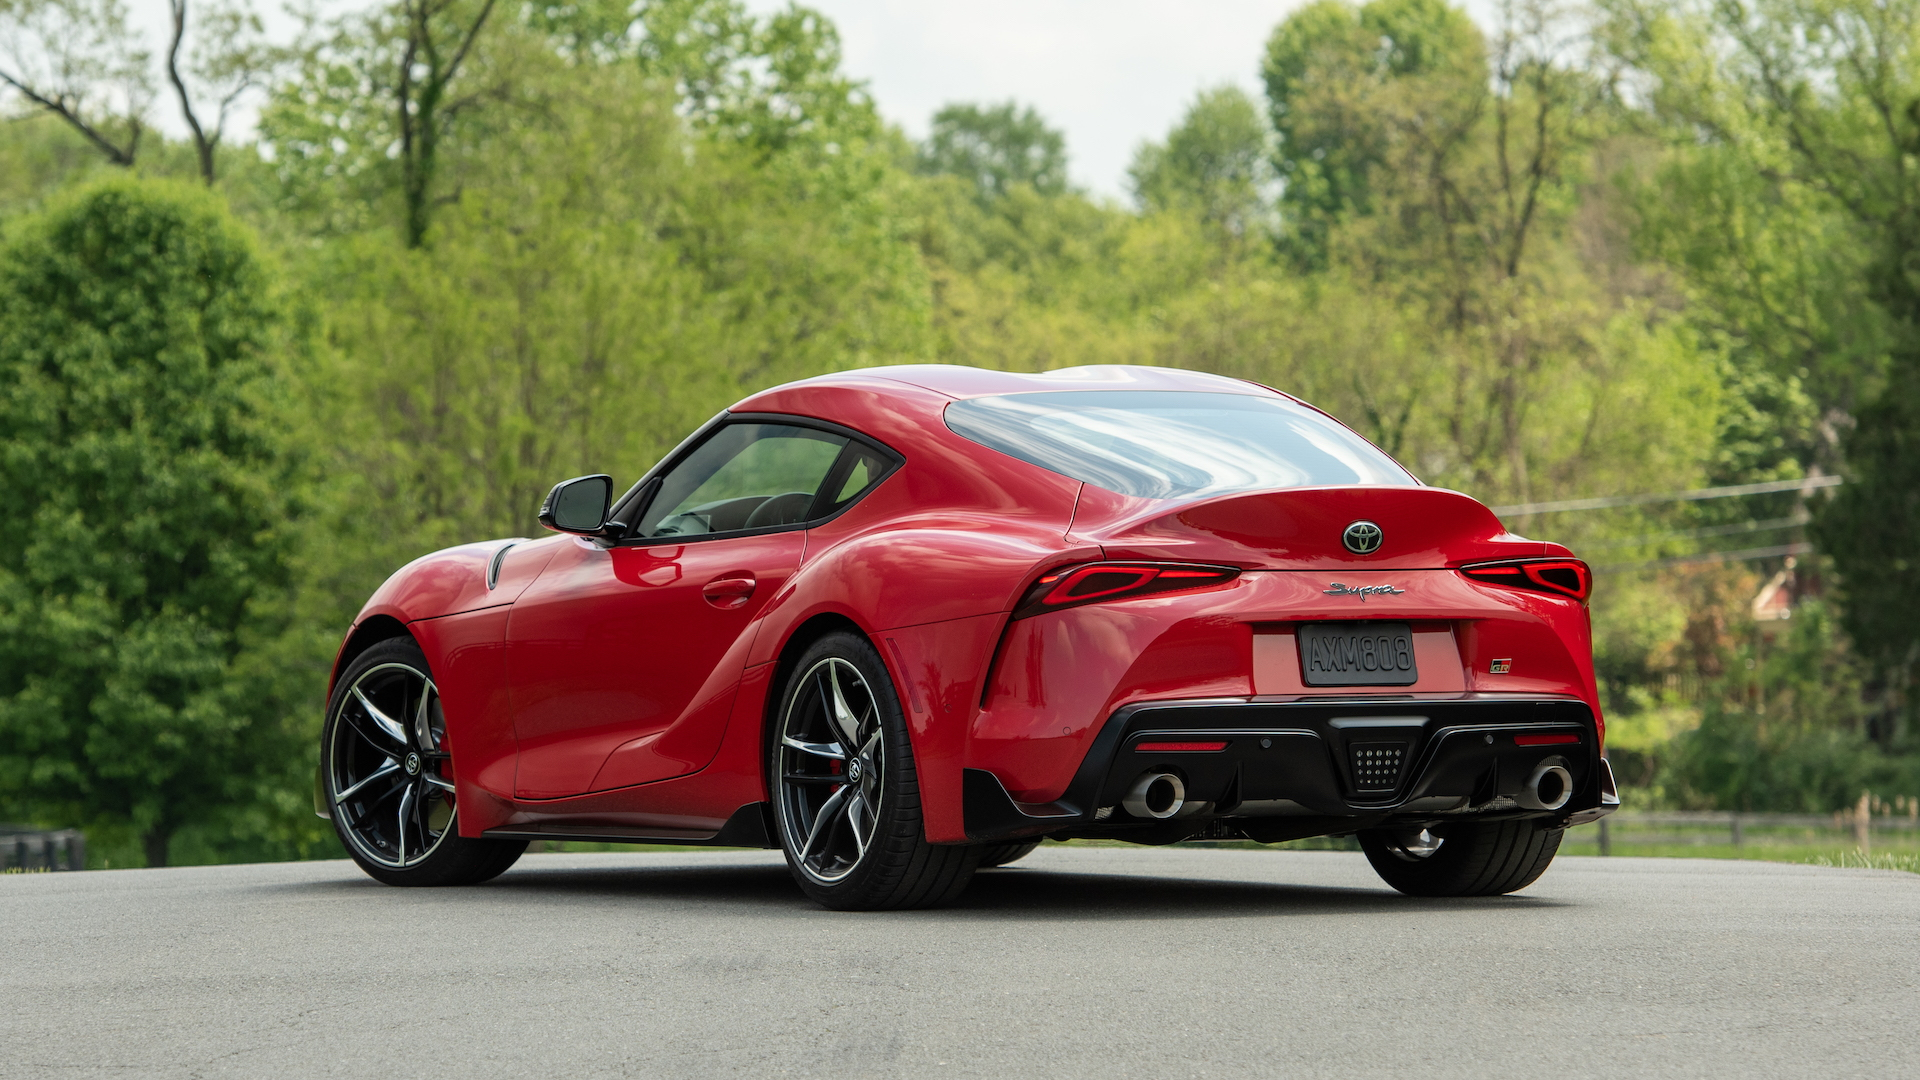 First drive review: 2020 Toyota Supra is fast and frenetic